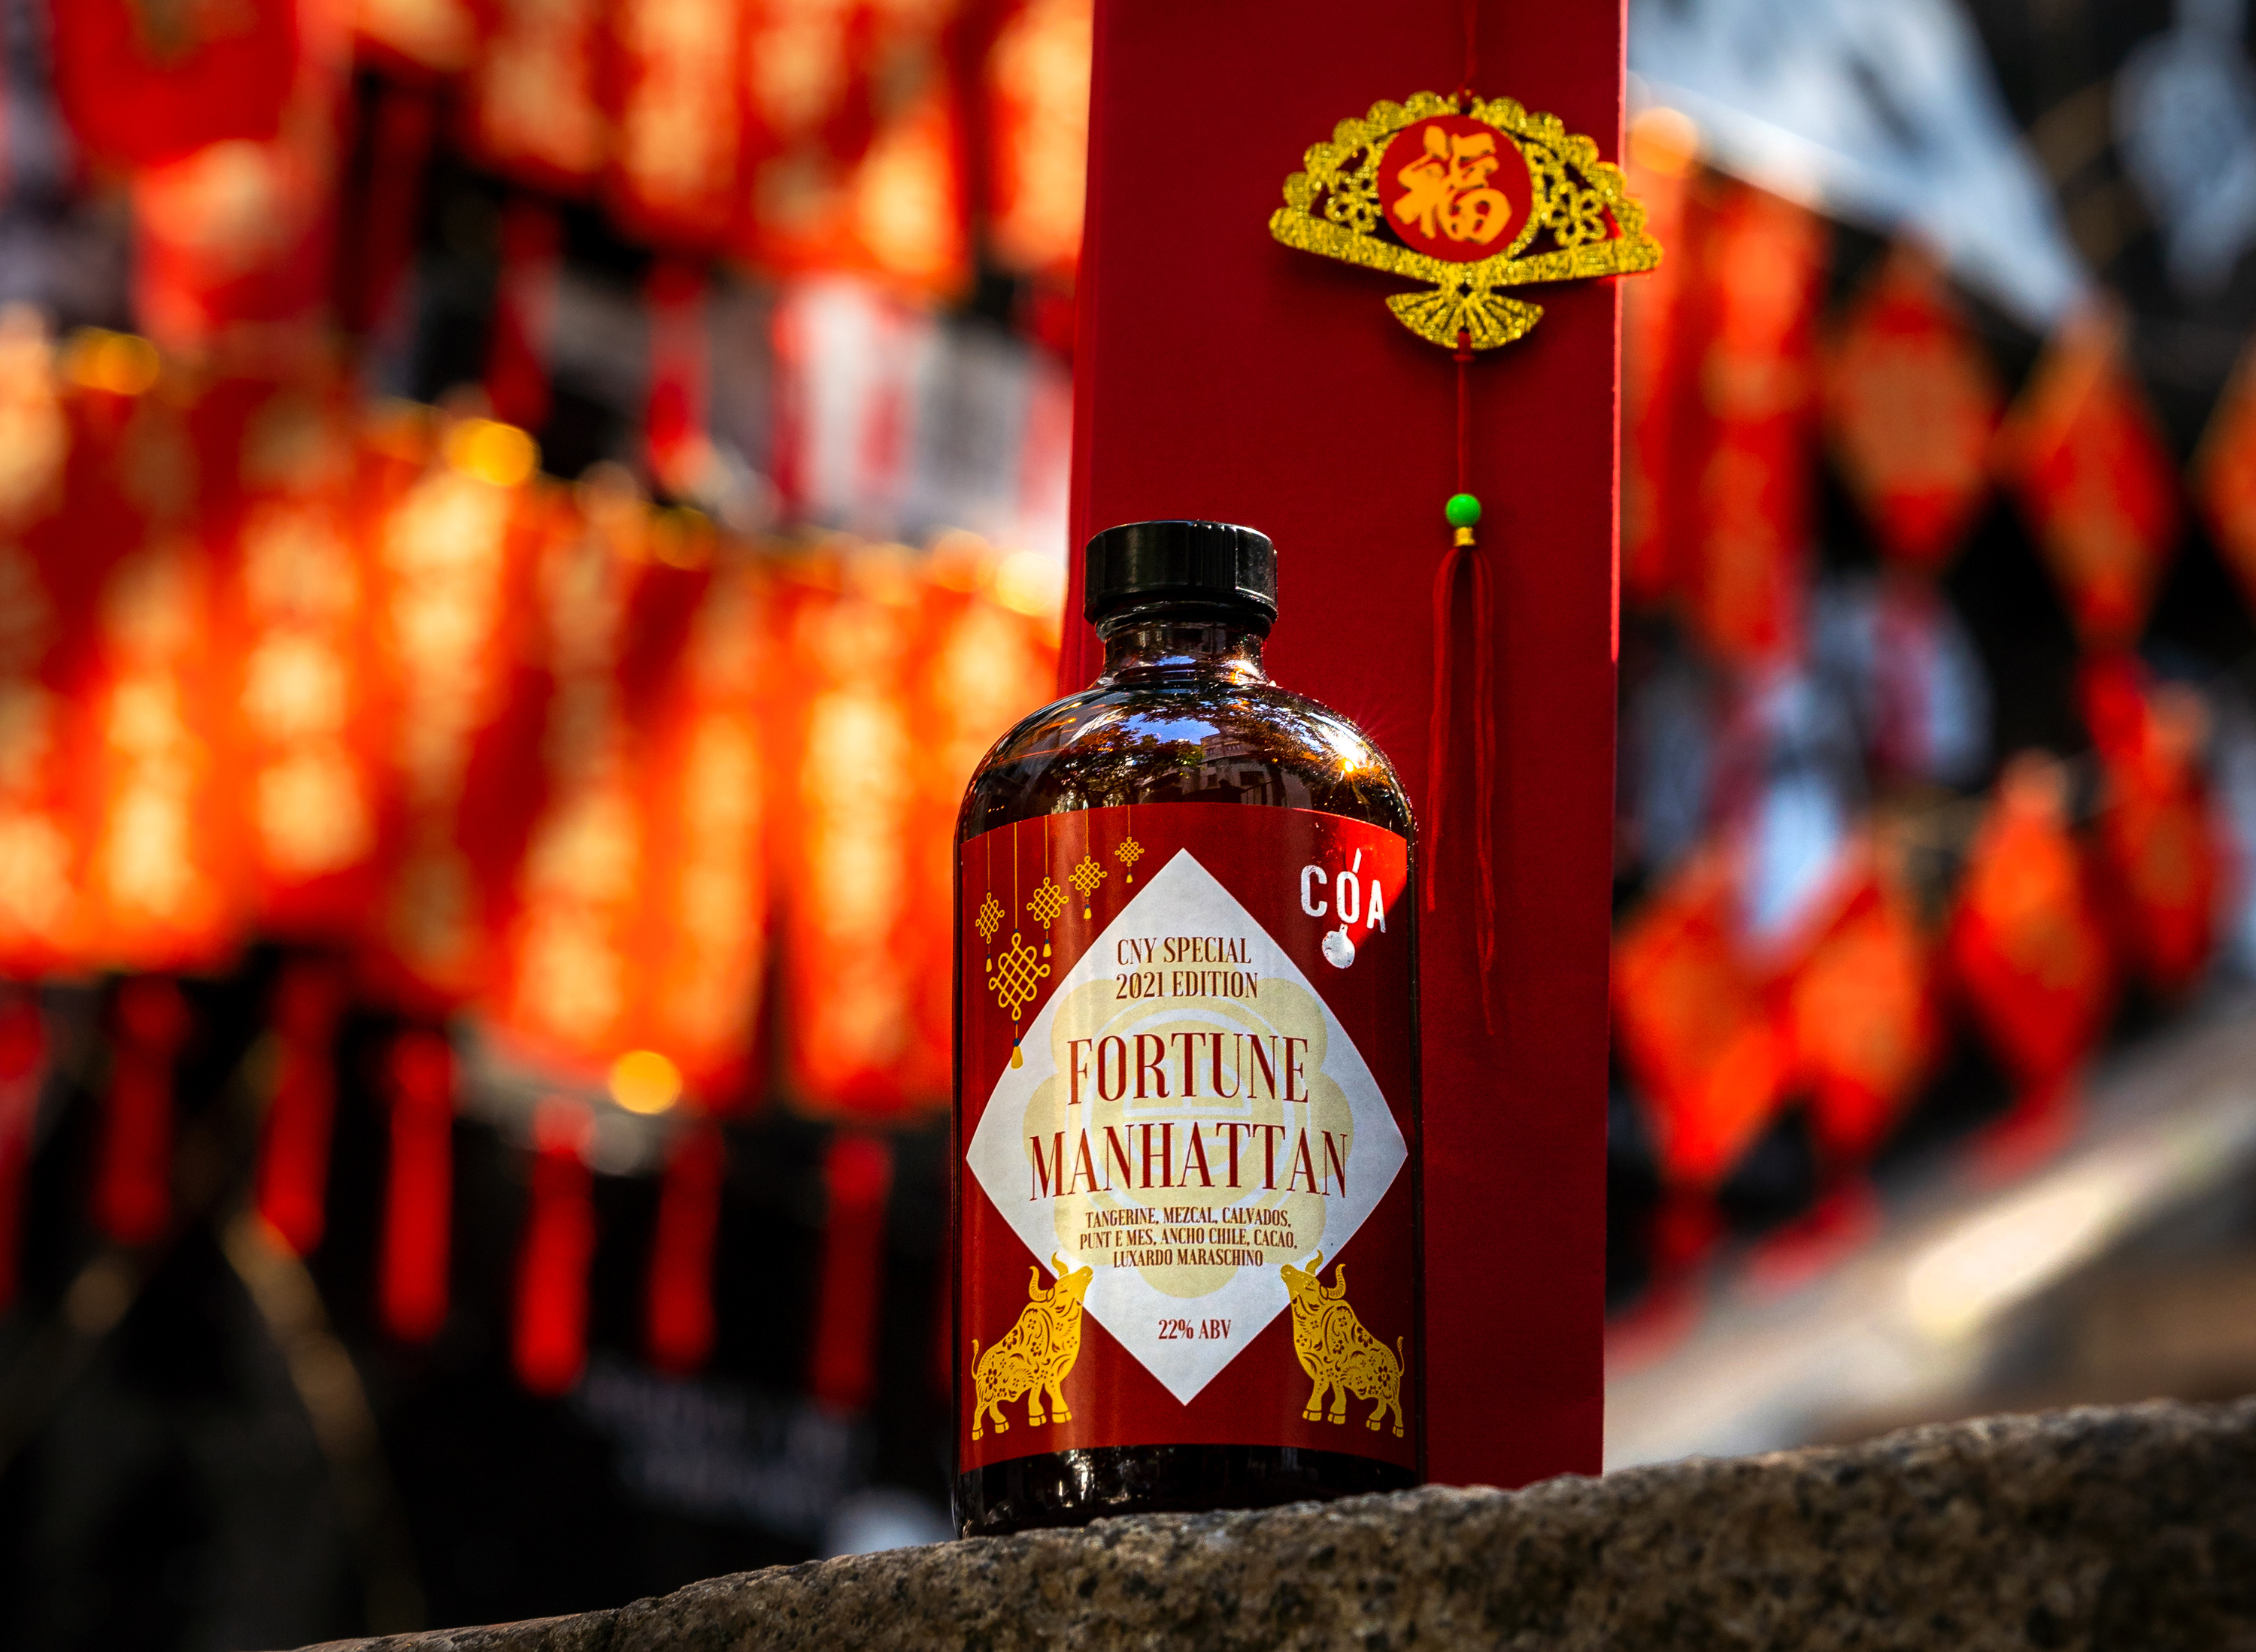 Coa's Special Lunar New Year Cocktail